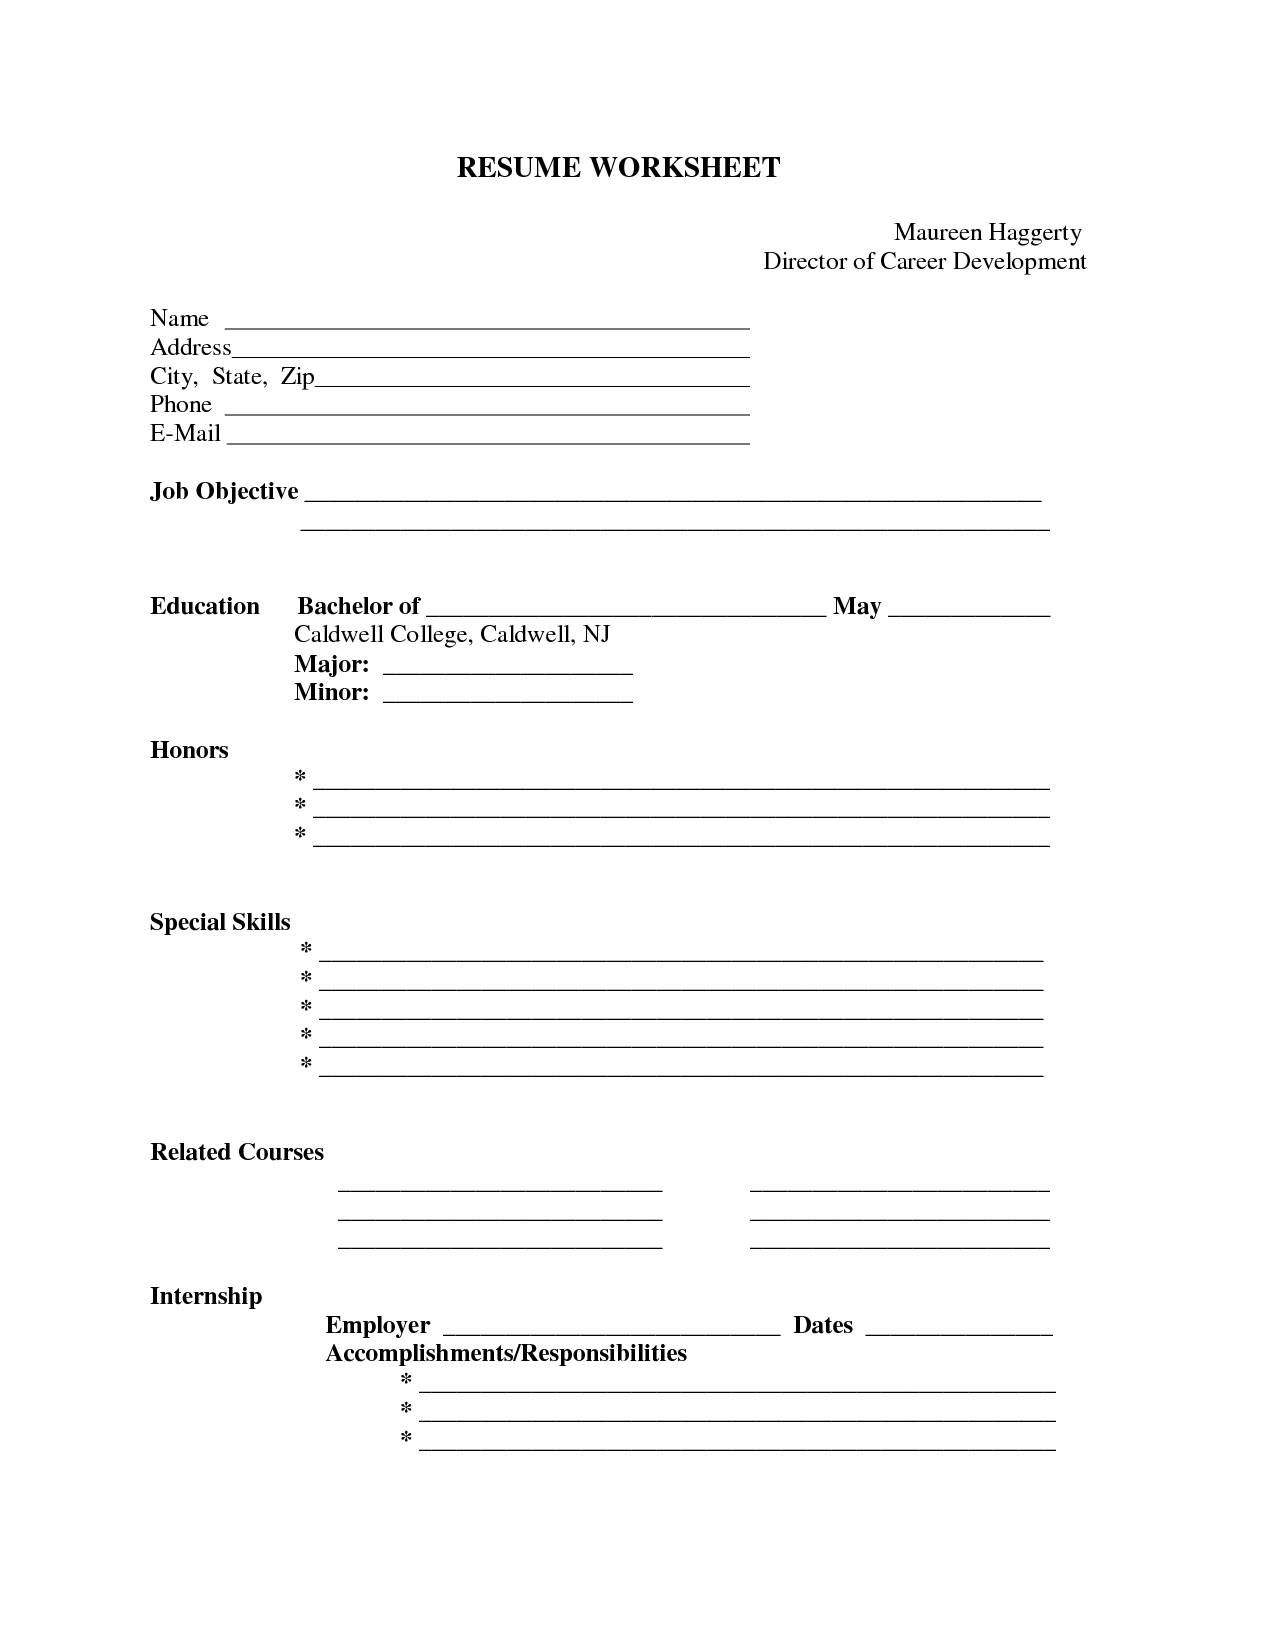 Pin by resumejob on Resume Job | Pinterest | Resume form, Free ...